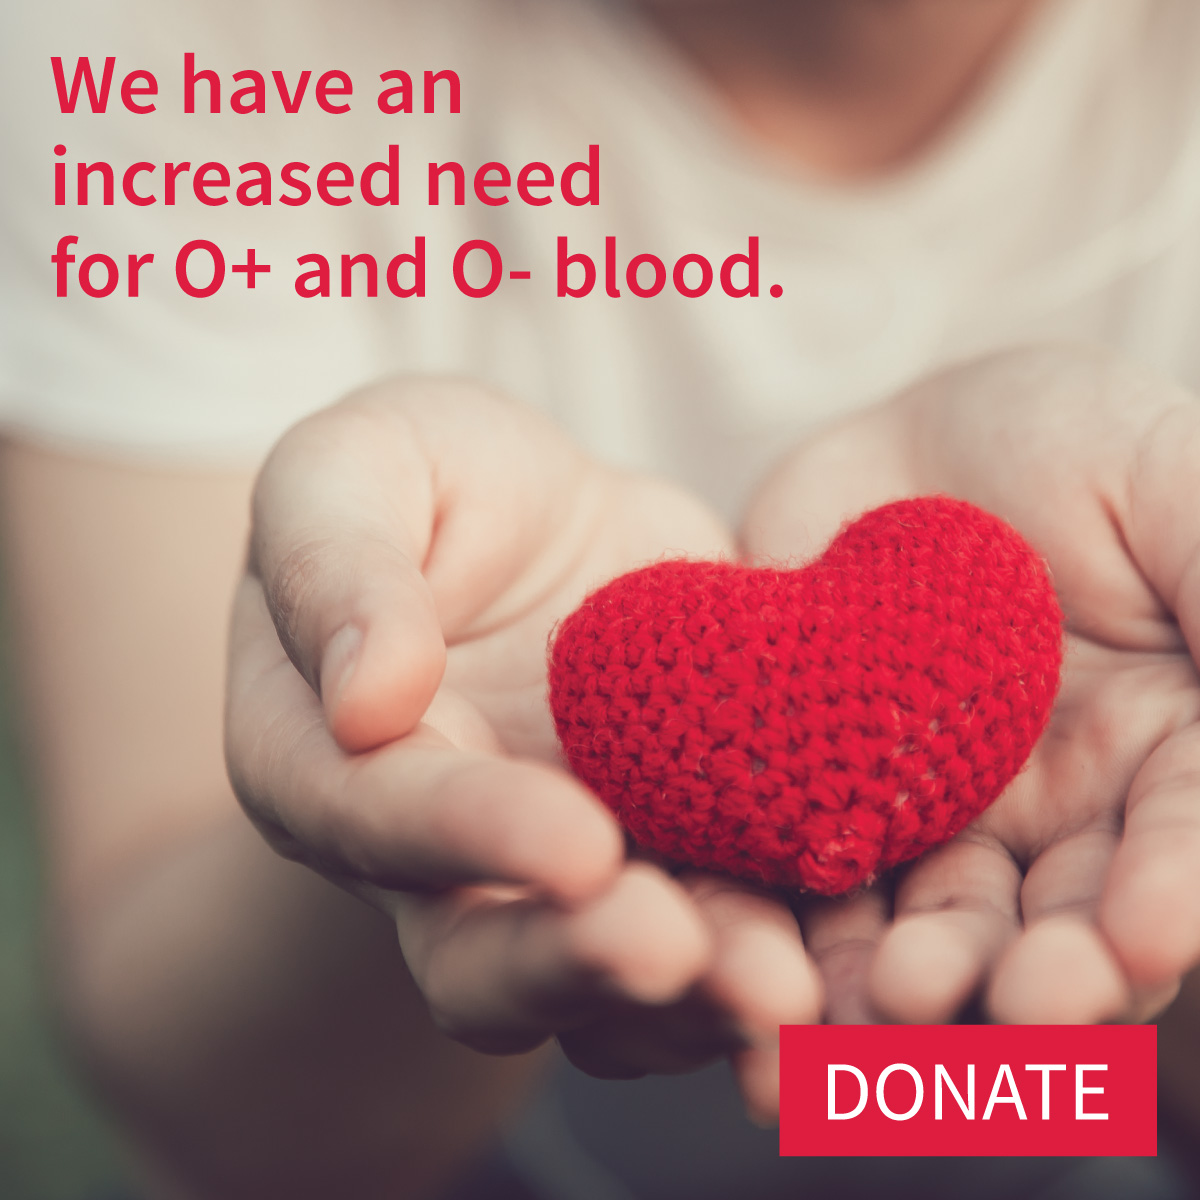 Increased need for O+ and O- blood products